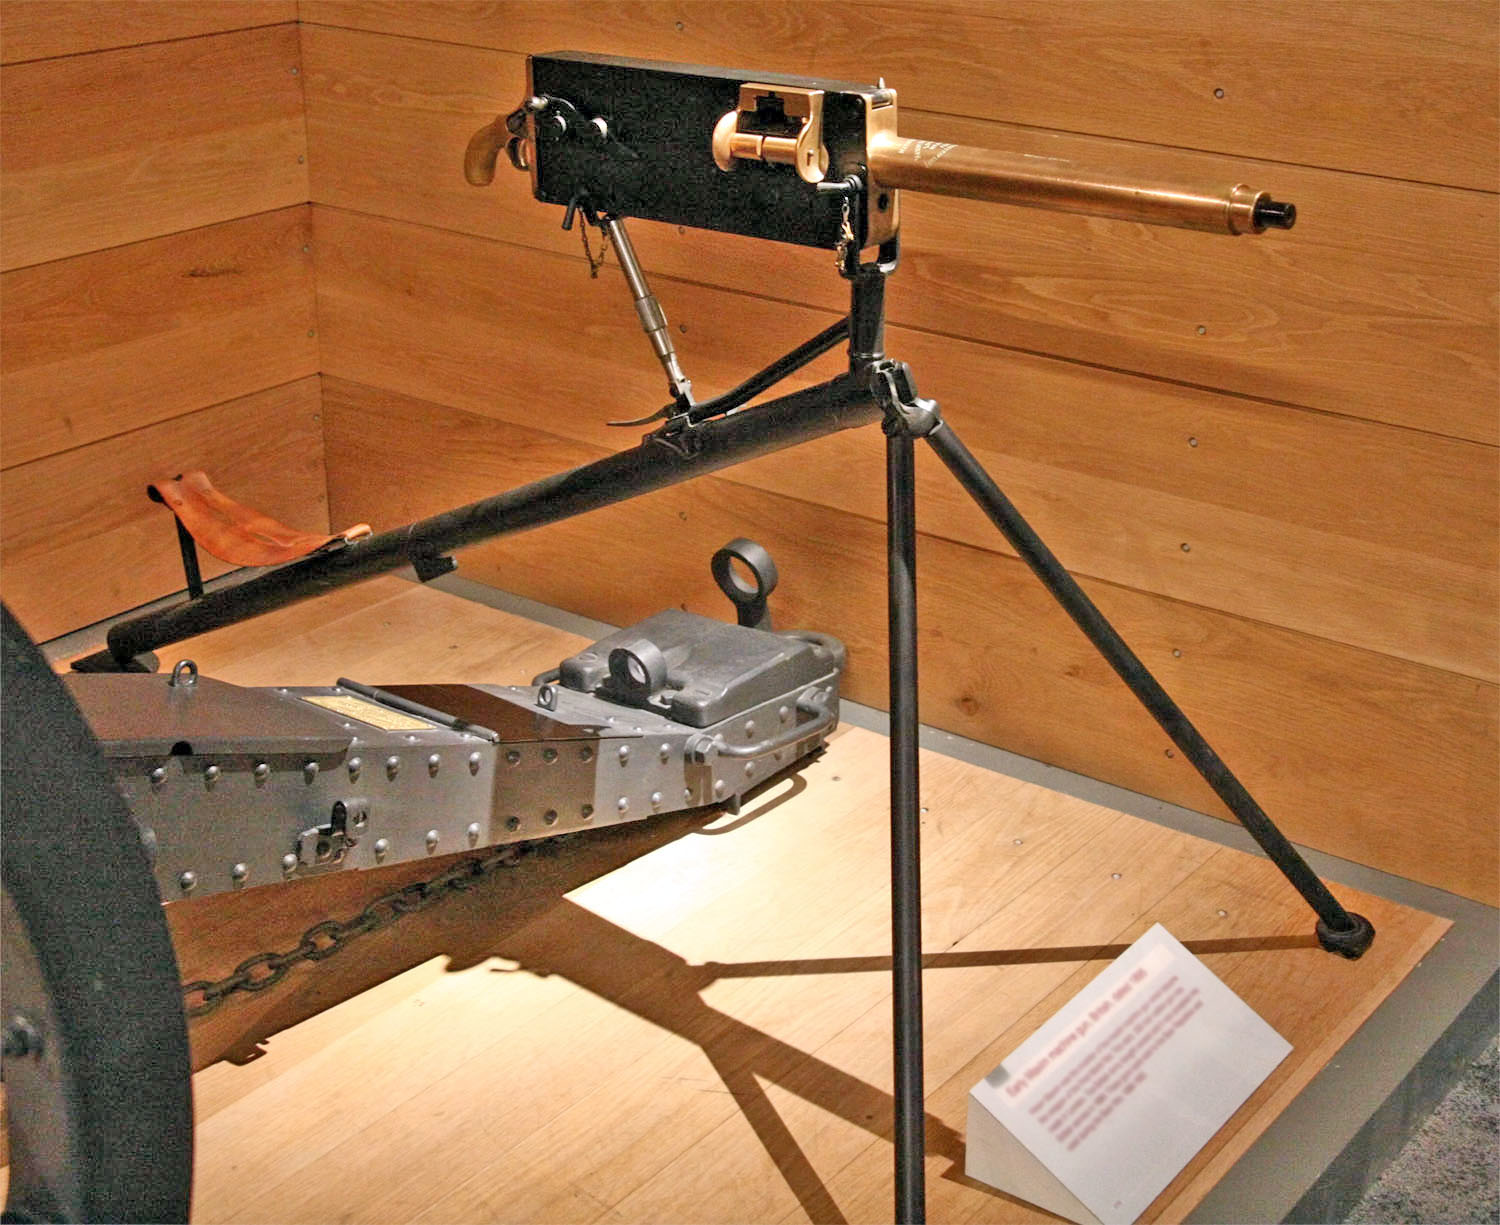 Maxim_machine_gun_Megapixie.jpg